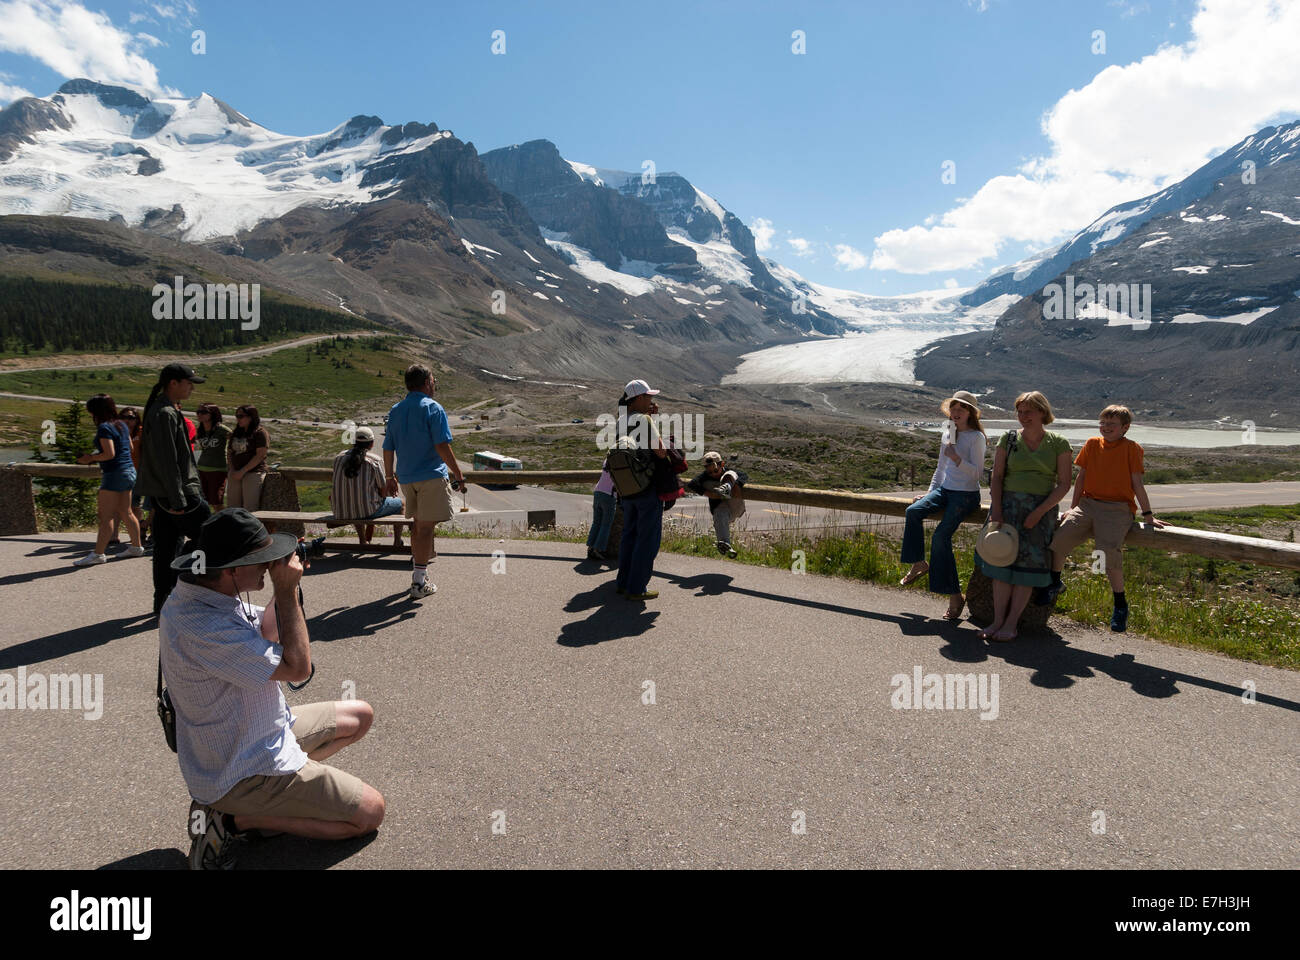 Elk203-7364 Canada, Alberta, Jasper National Park, Columbia Icefield, Visitor Center, view and visitors - Stock Image